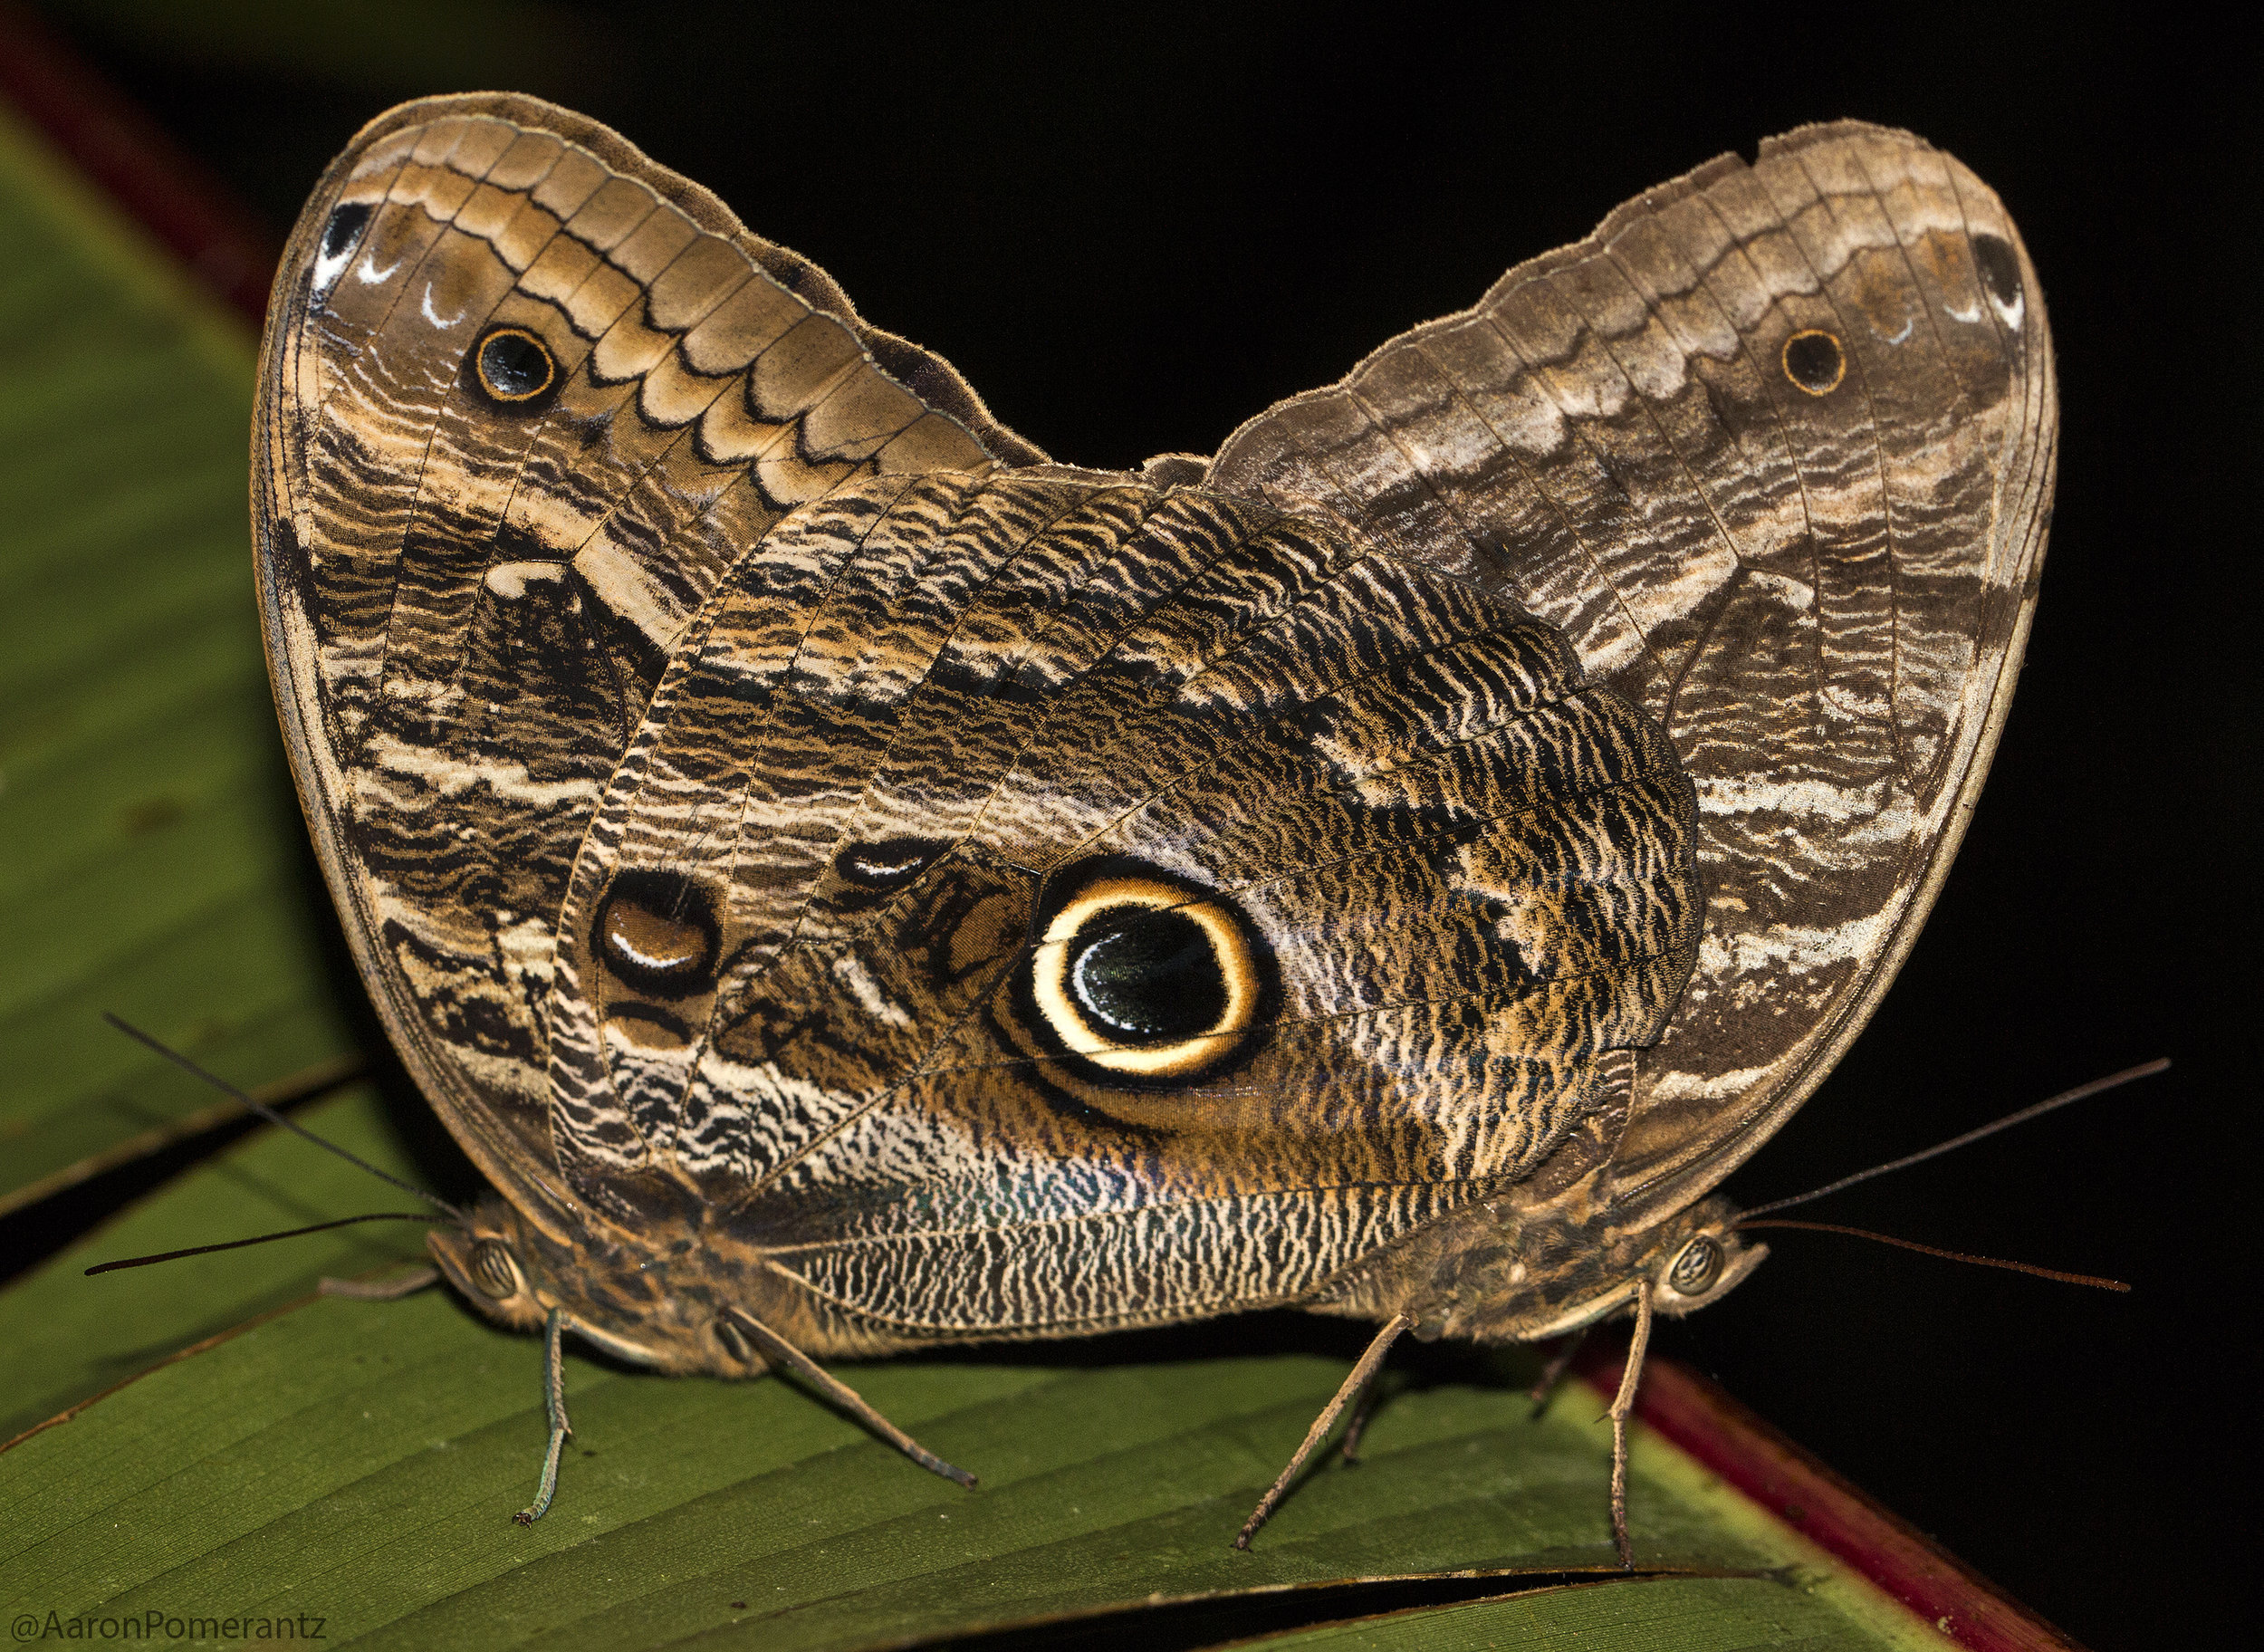 Owl Butterflies mating. The large eye spot on the hindwing is thought to startle potential predators like birds, a form of Batesian mimicry in which a harmless organism acquires protection by resembling a threatening animal.